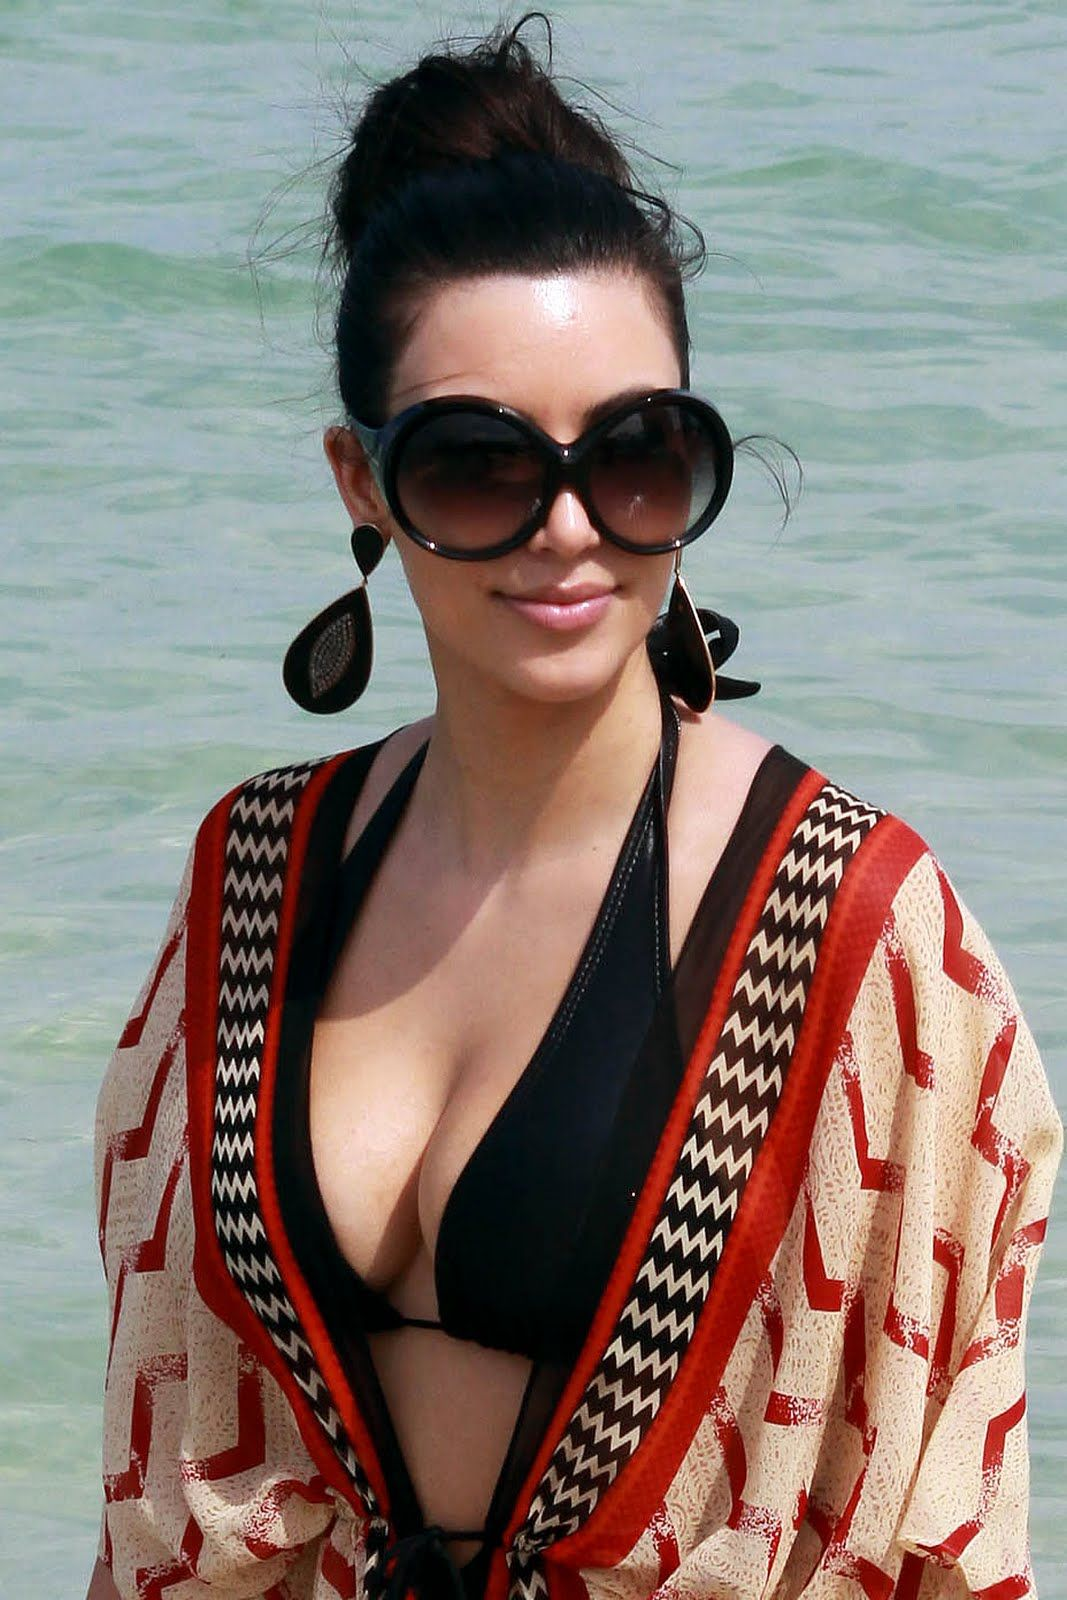 Kim Kardashian:  I eat oats, eggs, turkey or fruit to start the day.Check out more at:http://www.womenfitness.net/celebrities_mantra.htm